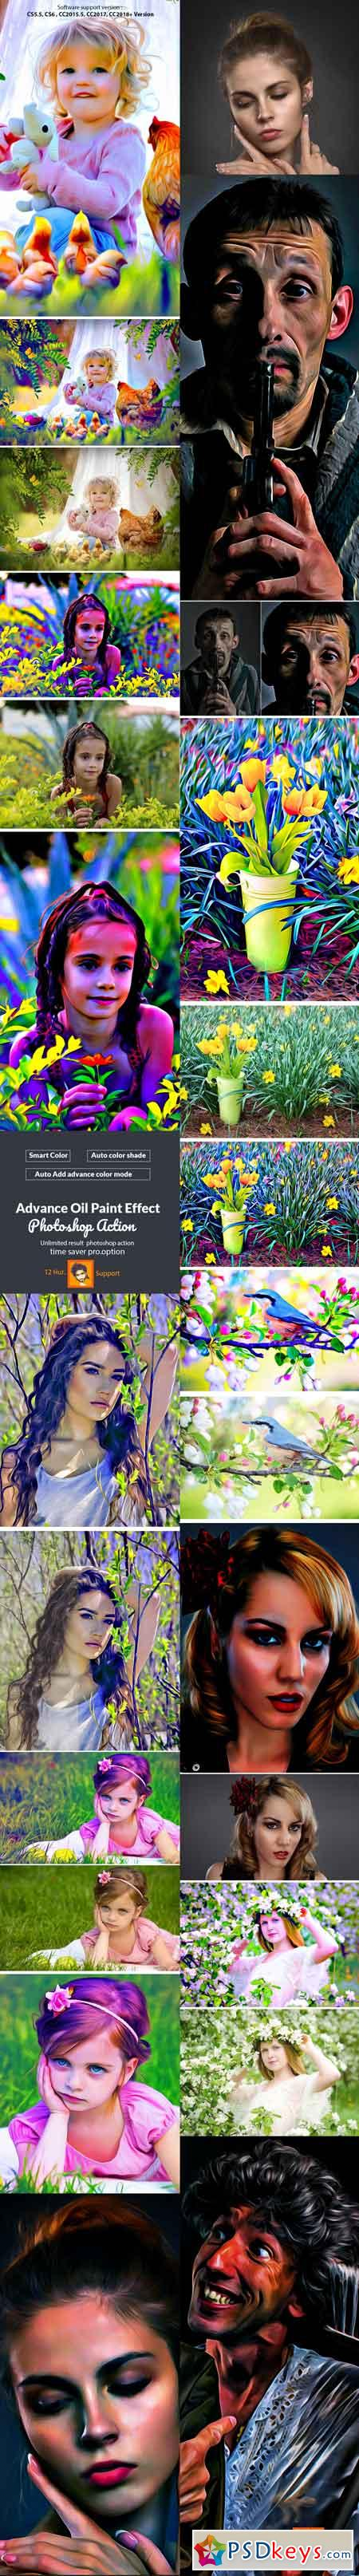 Advance Oil Paint Effect Photoshop Action 22700182